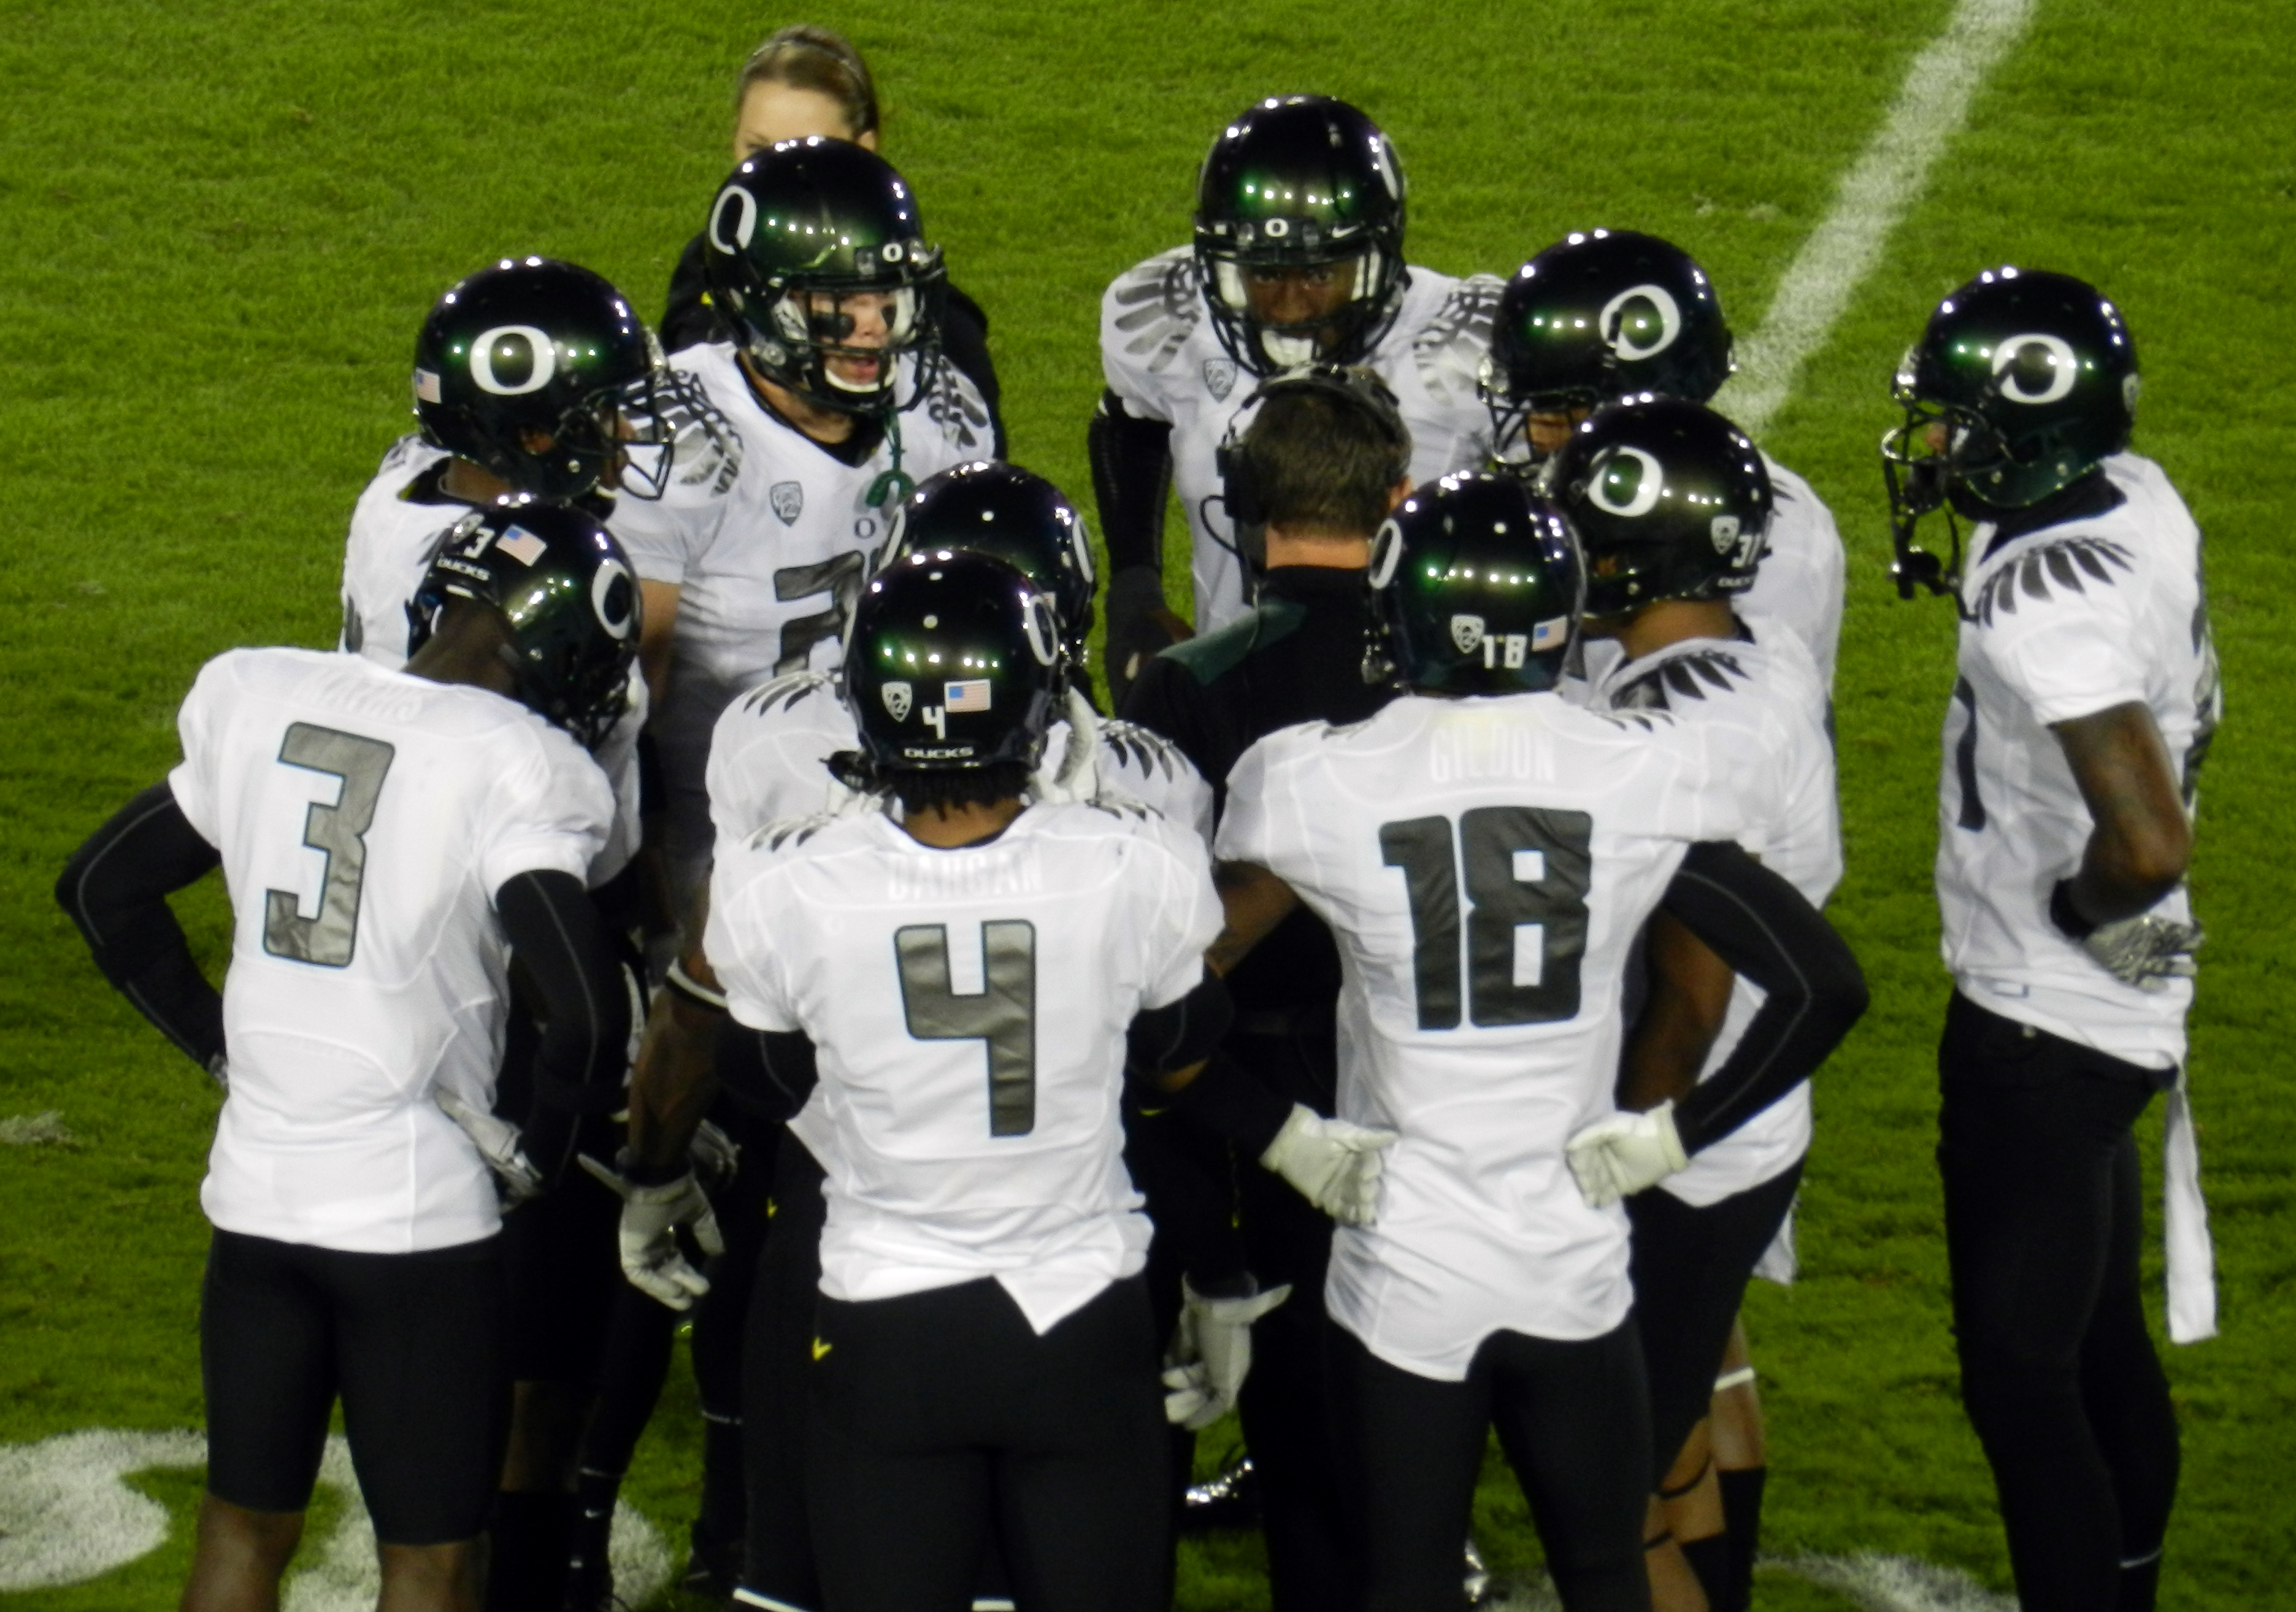 The University of Oregon football team doesn't deserve to be punished more severely. (Daniel Hartwig, Wikimedia Commons)